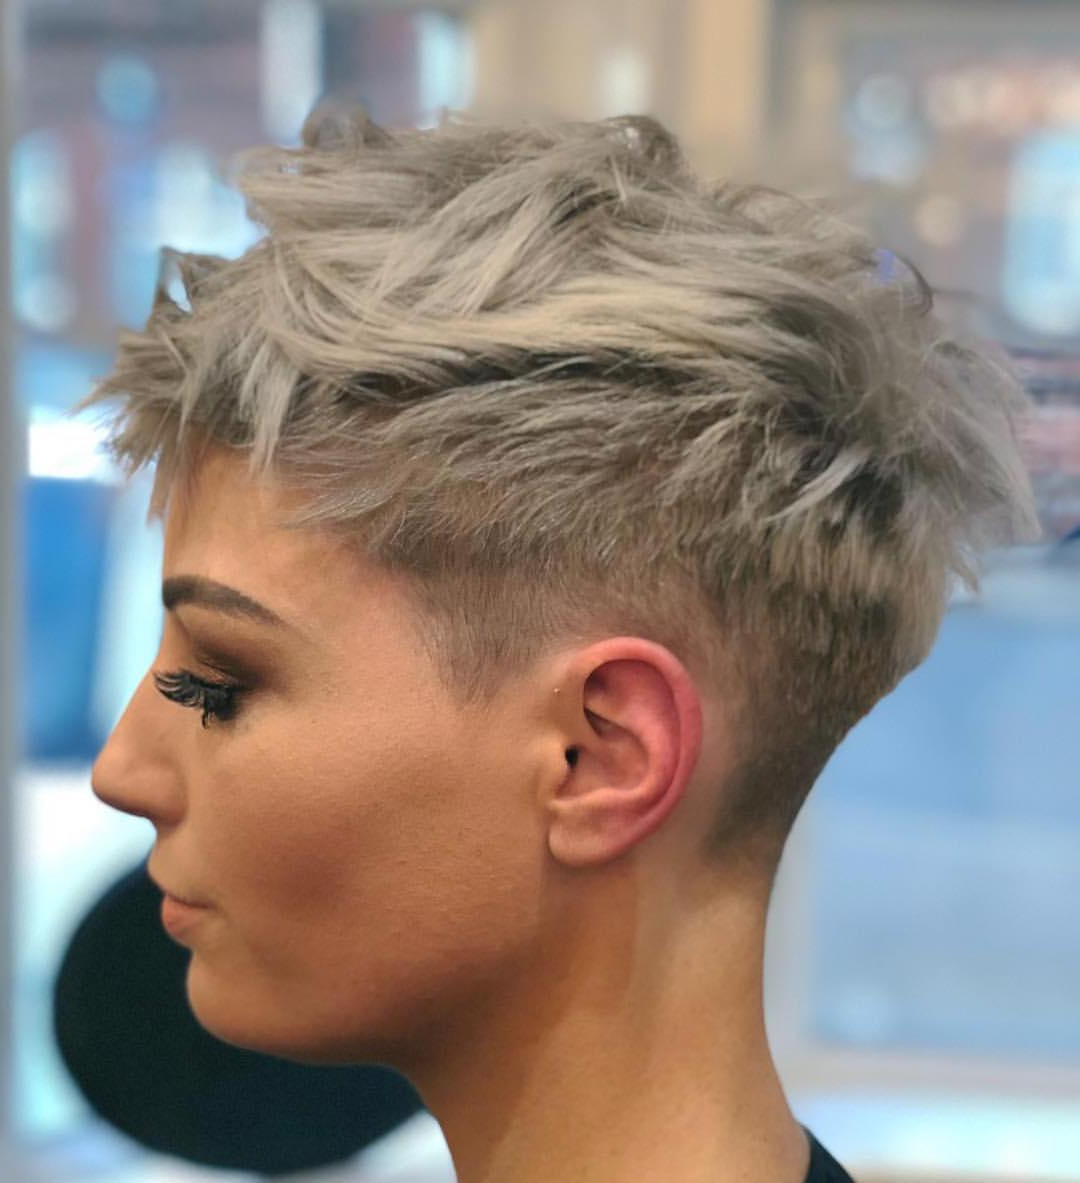 016 Summer Hairstyle Ideas For Short Hair Women Haircut Within 2021 Short Hair Mohawk Hairstyles (View 1 of 20)